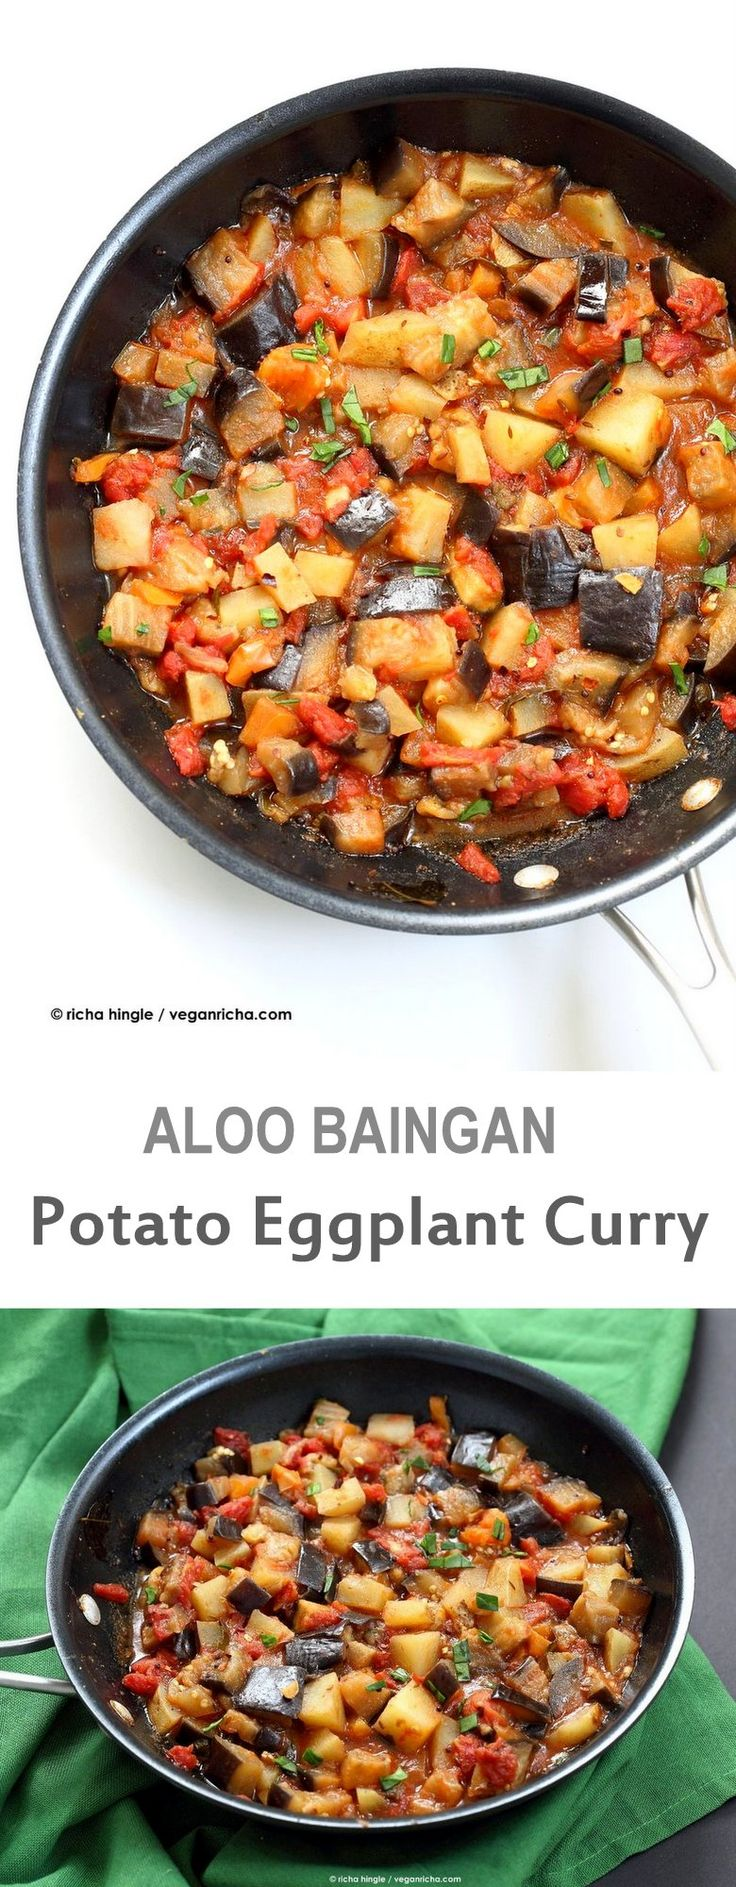 Easy Indian spiced Eggplants and Potatoes. Aloo Baingan Recipe. Curried Potato Eggplant side. | VeganRicha.com vegan glutenfree Indian